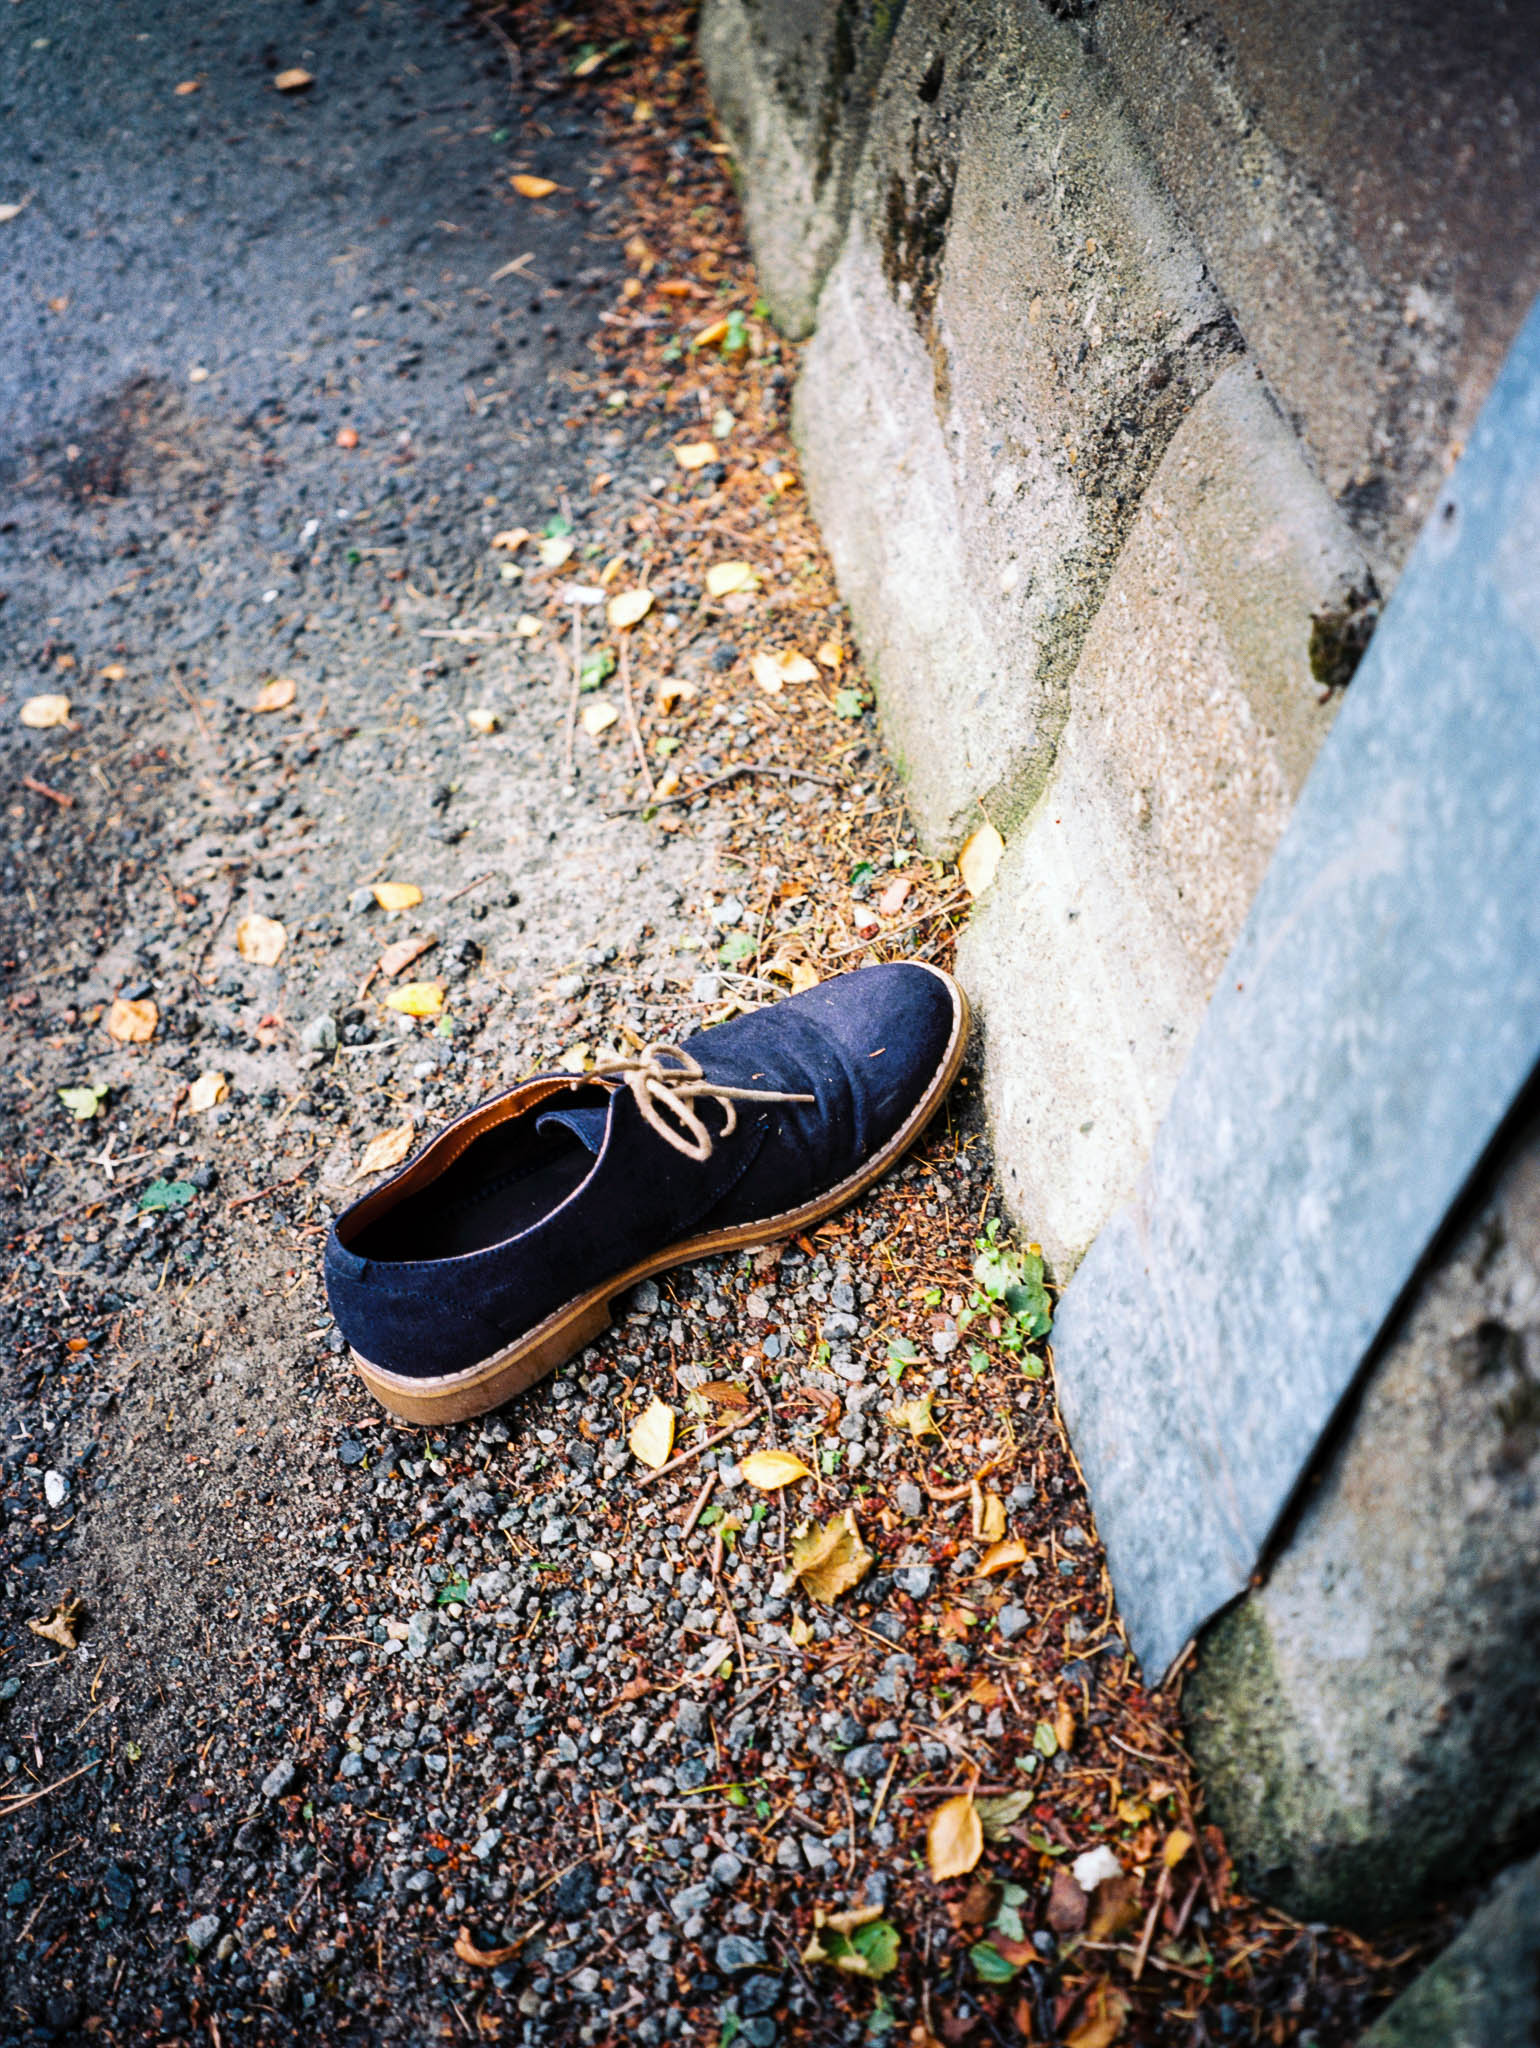 Wednesday 14.9.2016. Forgotten or dumped shoe on sidewalk. Where is the other one? Where is the owner?